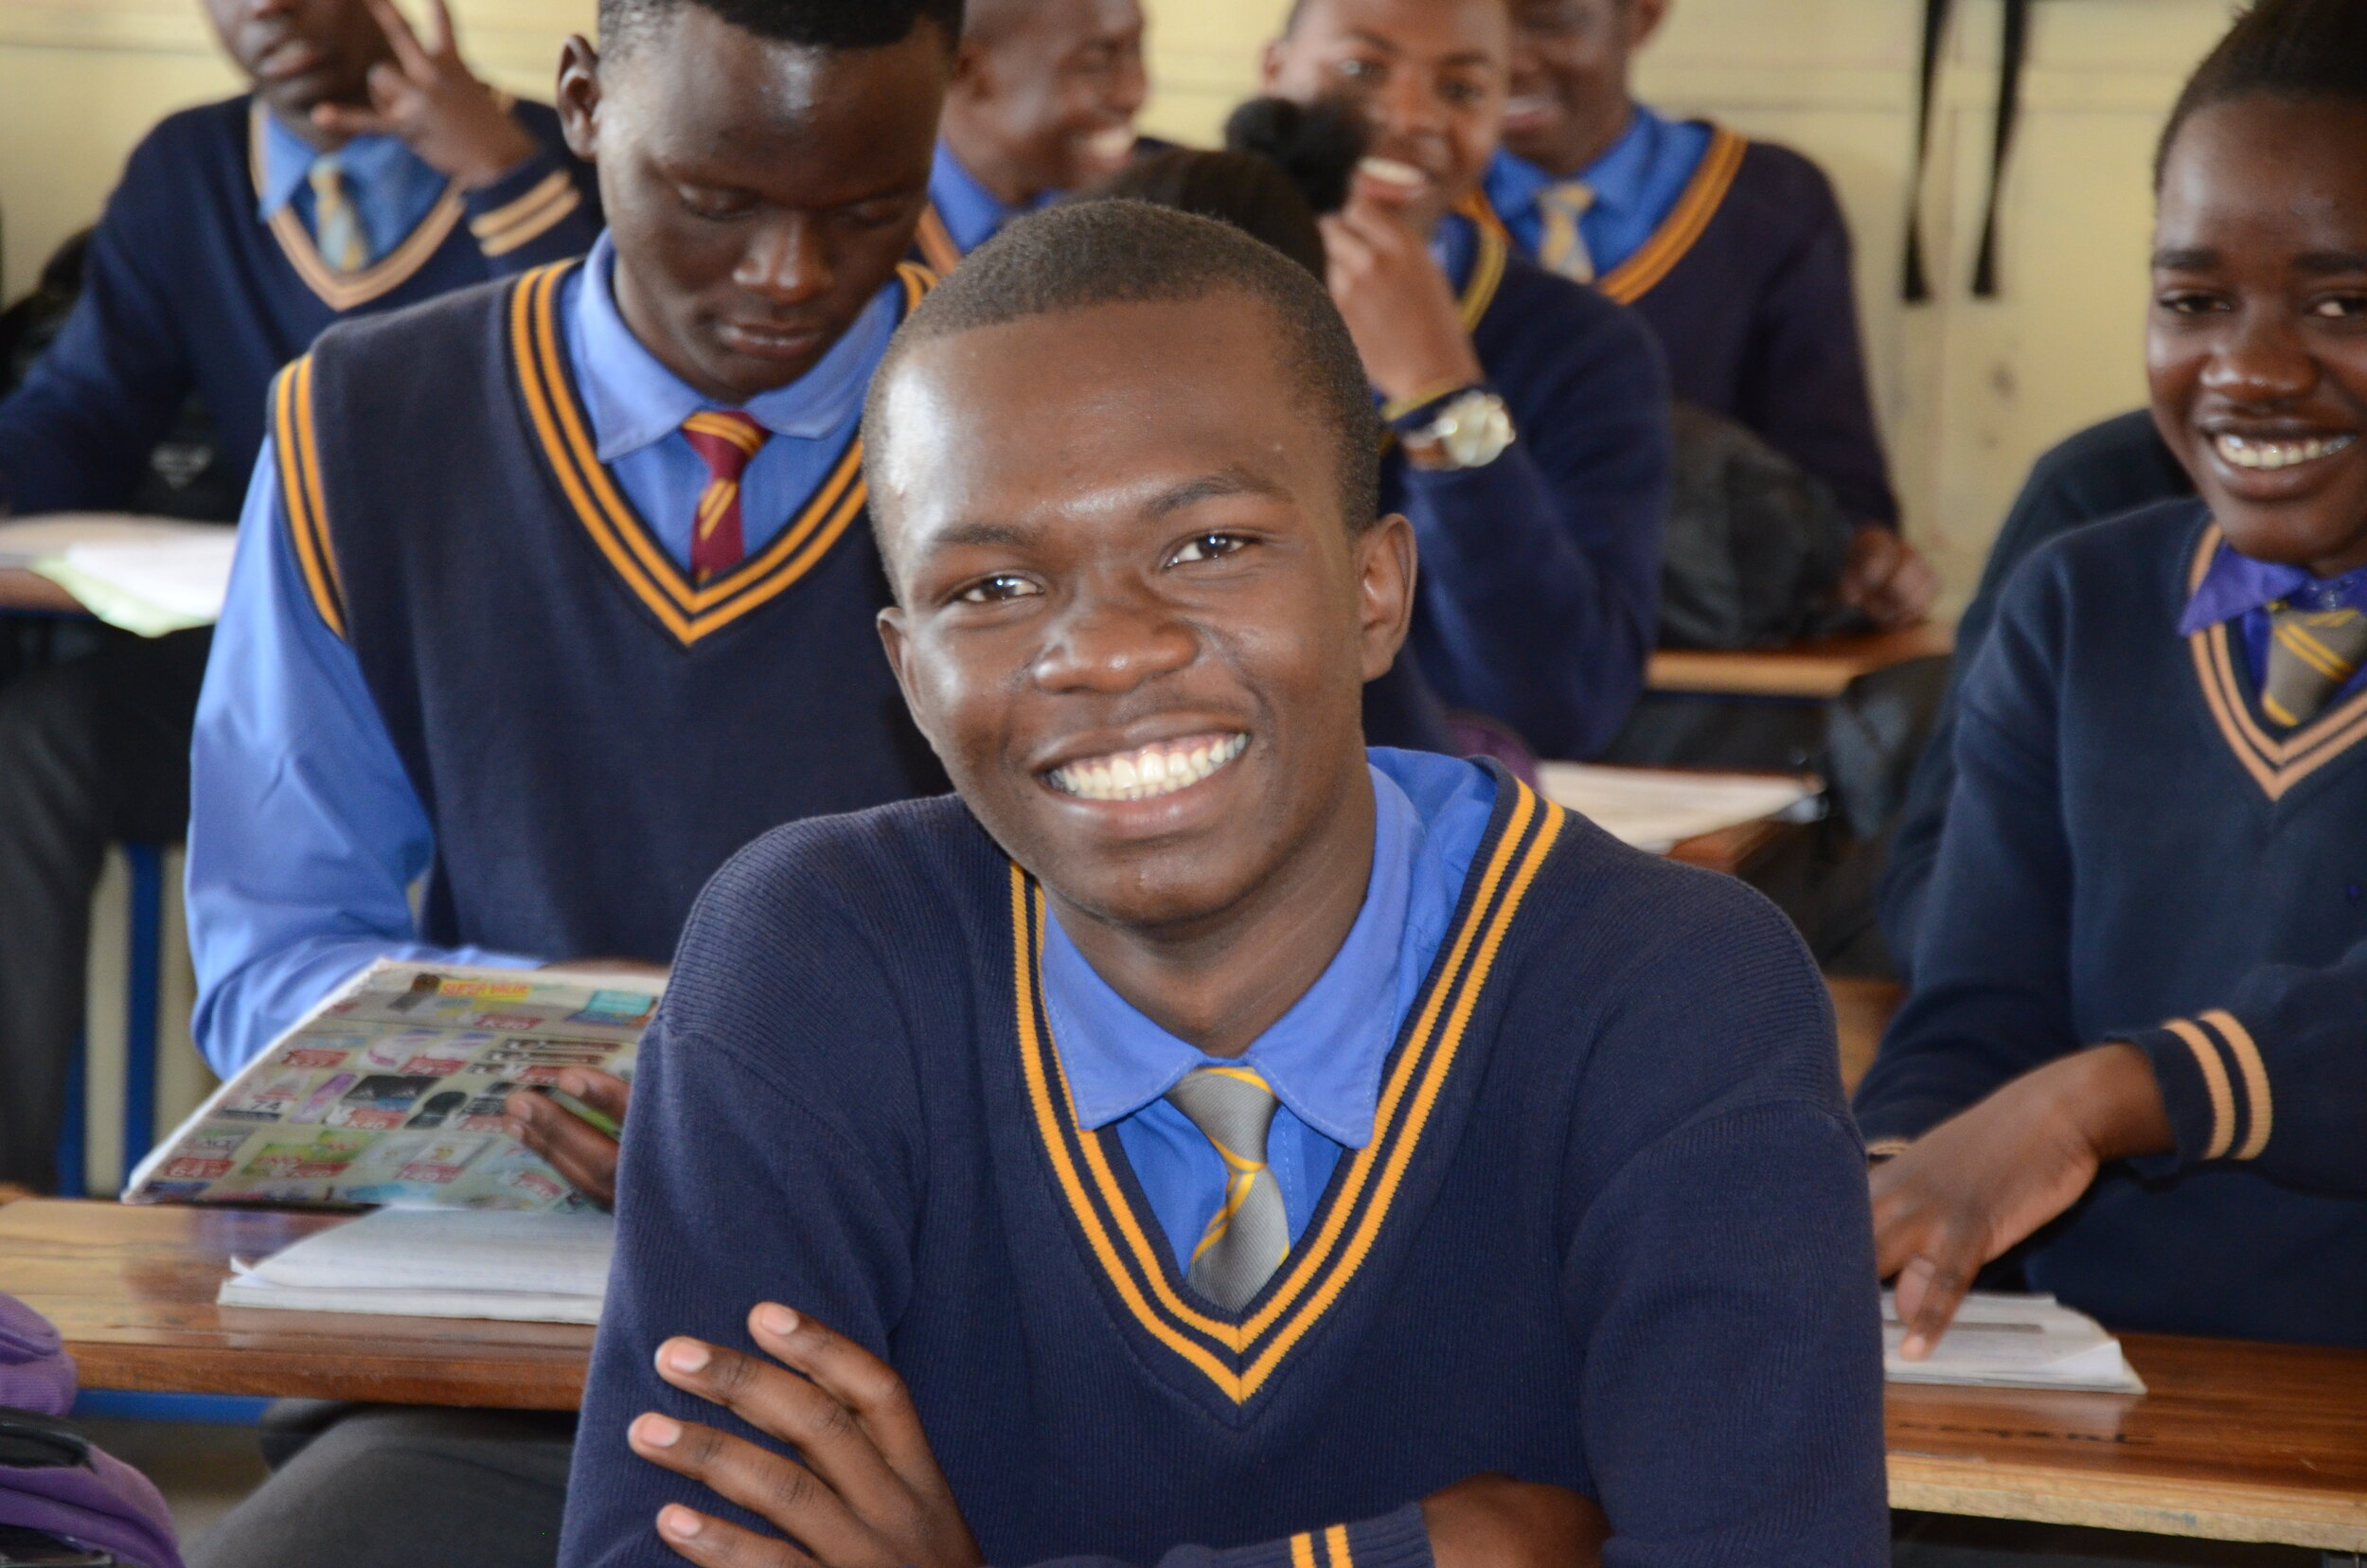 Timothy in class at Northmead Secondary School